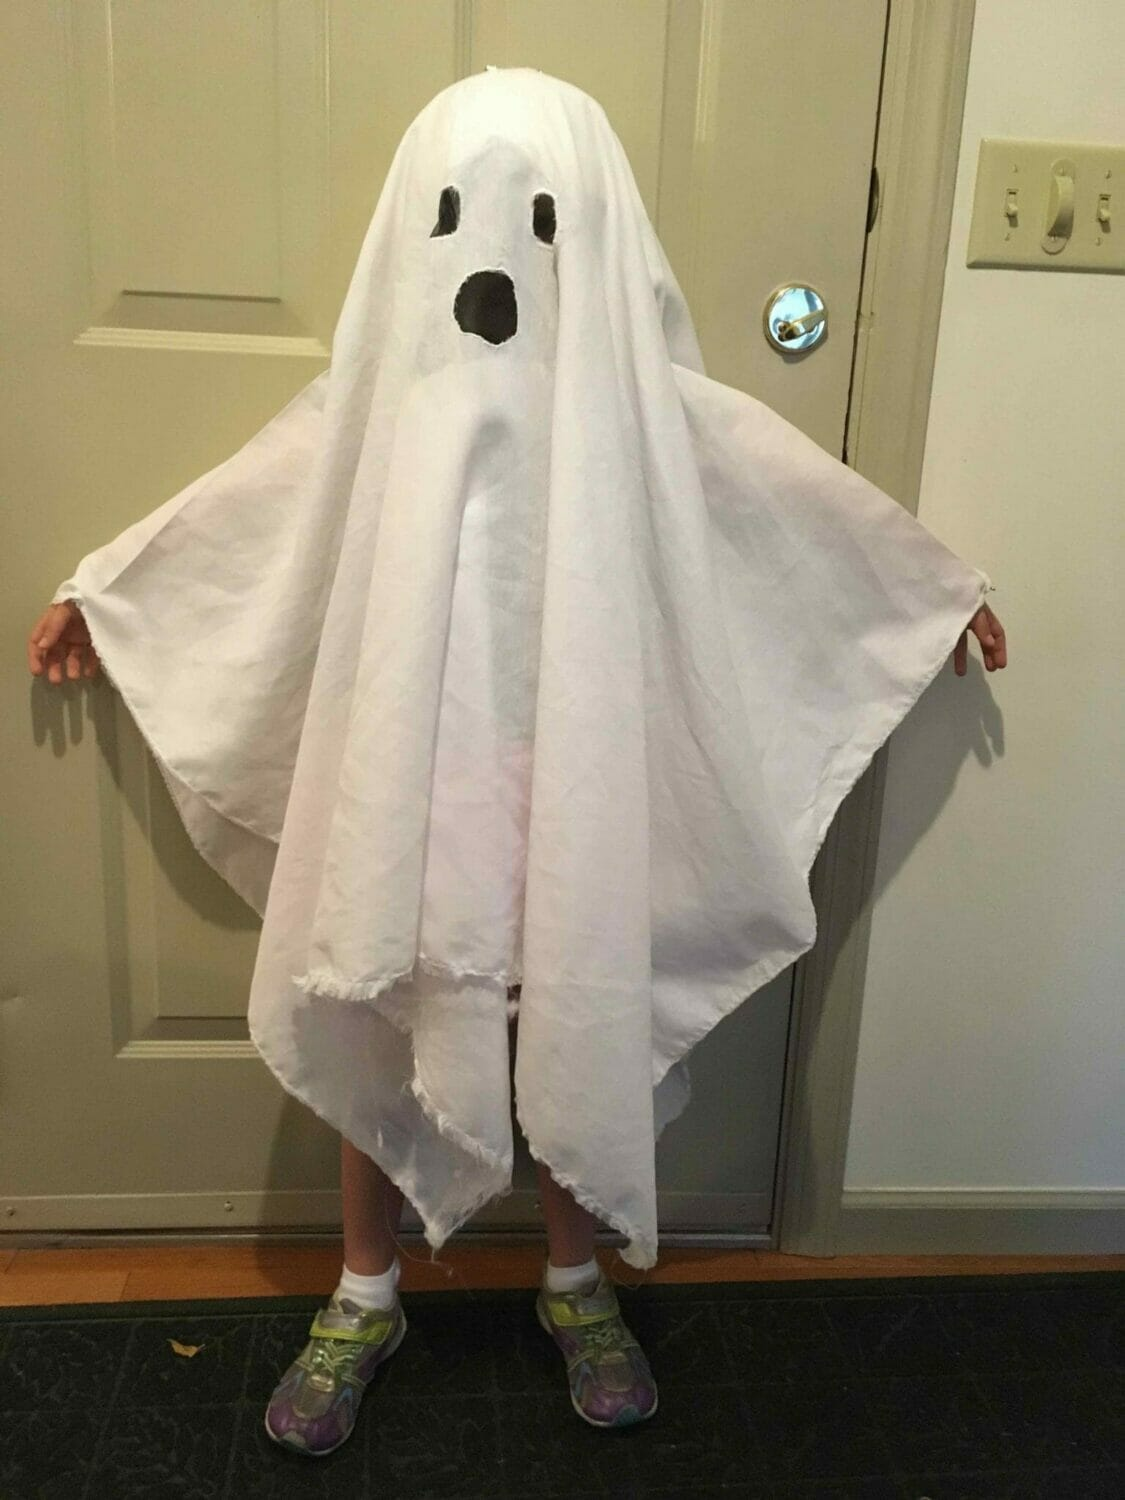 Kimmie wearing her finished ghost costume demonstrates why the wrist straps are especially useful & How To Make A Ghost Costume (Itu0027s Harder Than Youu0027d Think!) - Super ...